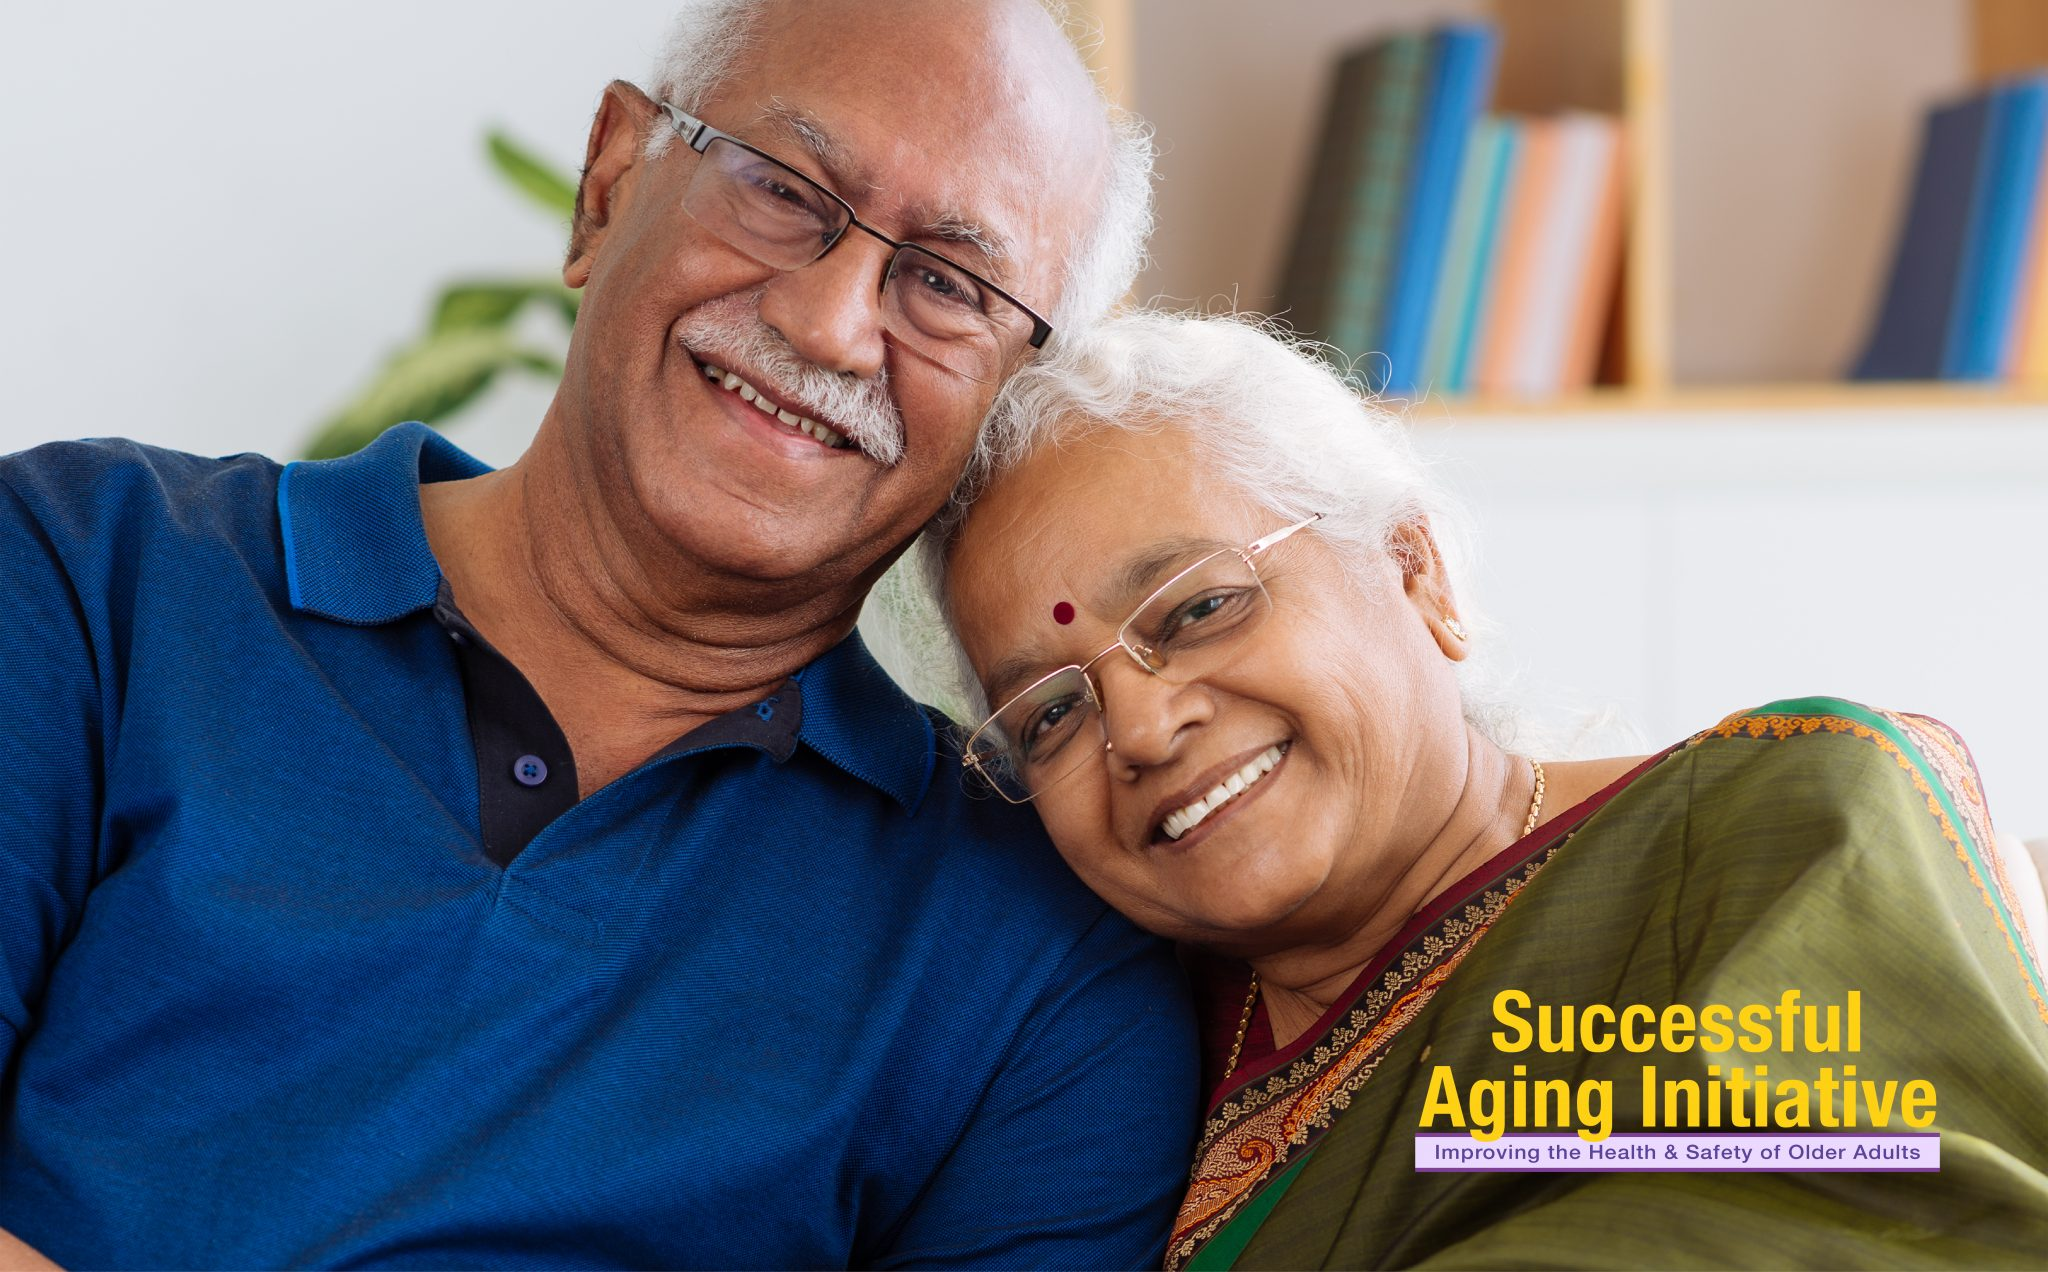 An Indian American older adult couple sits on their sofa, smiling.